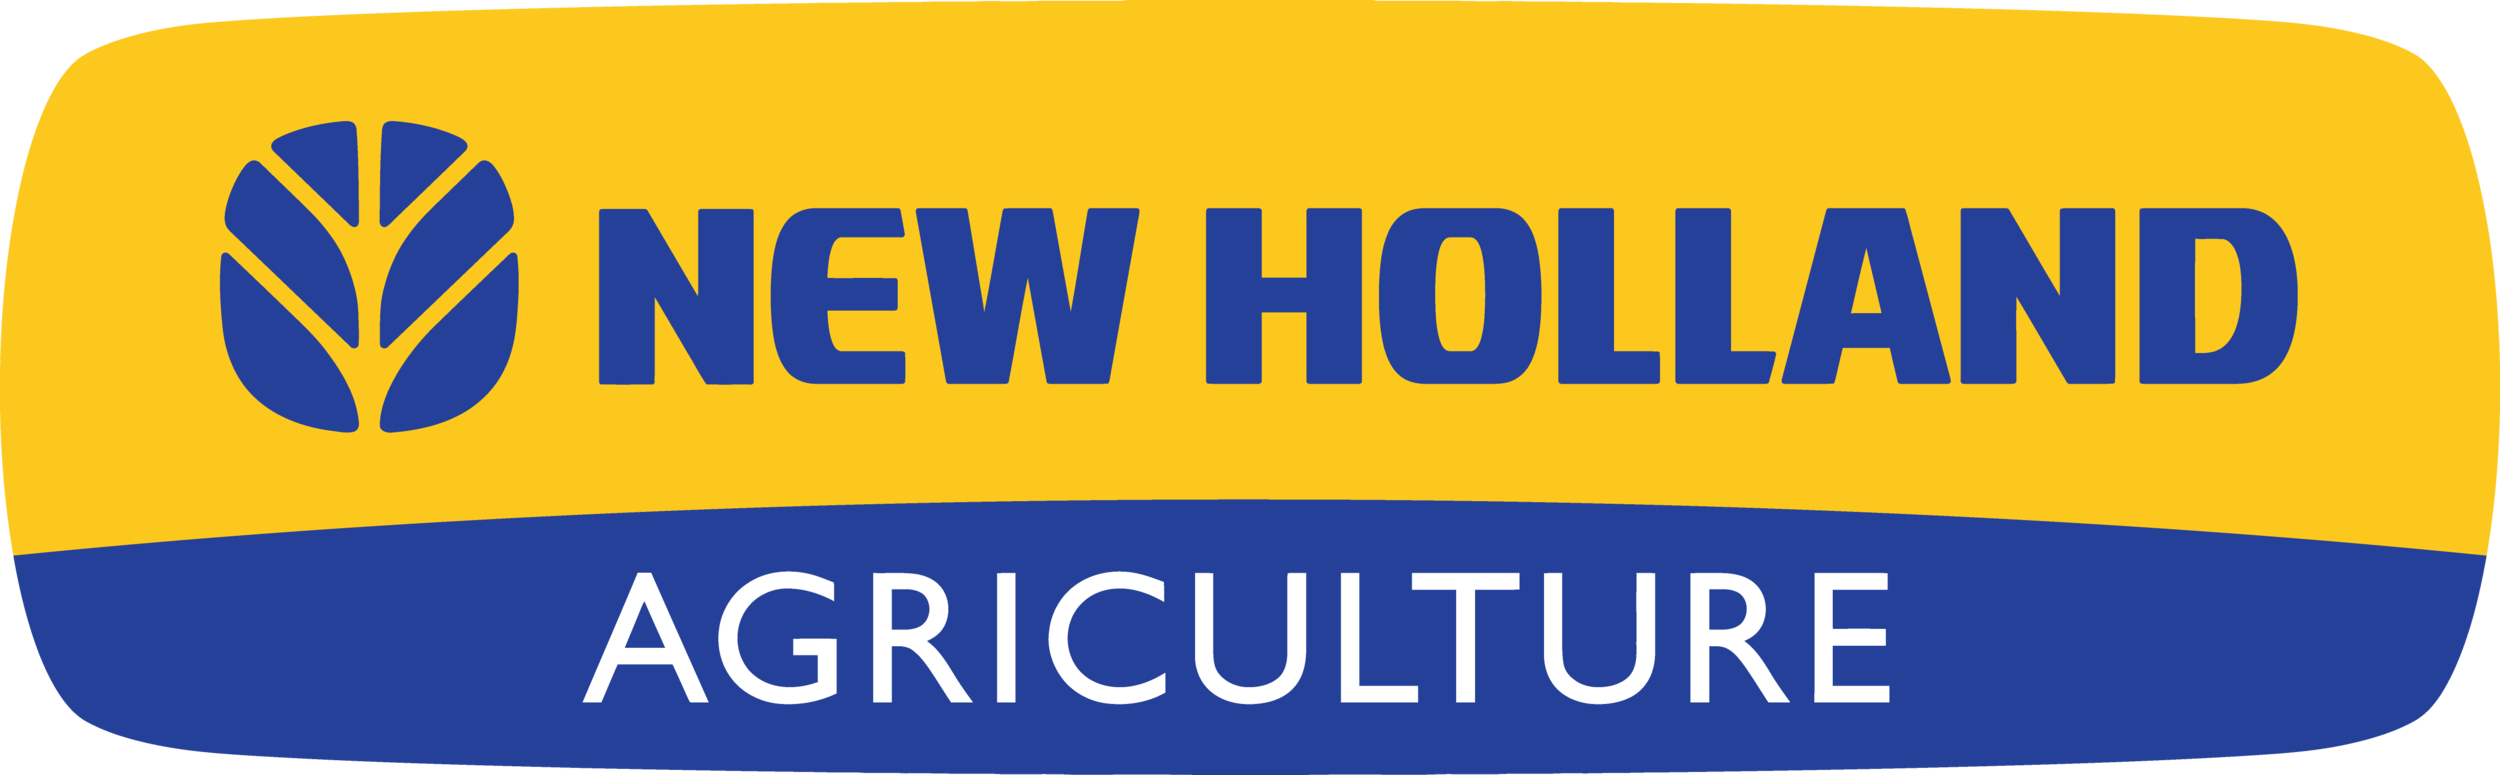 new-holland-logo-5E4150014A-seeklogo.com.png